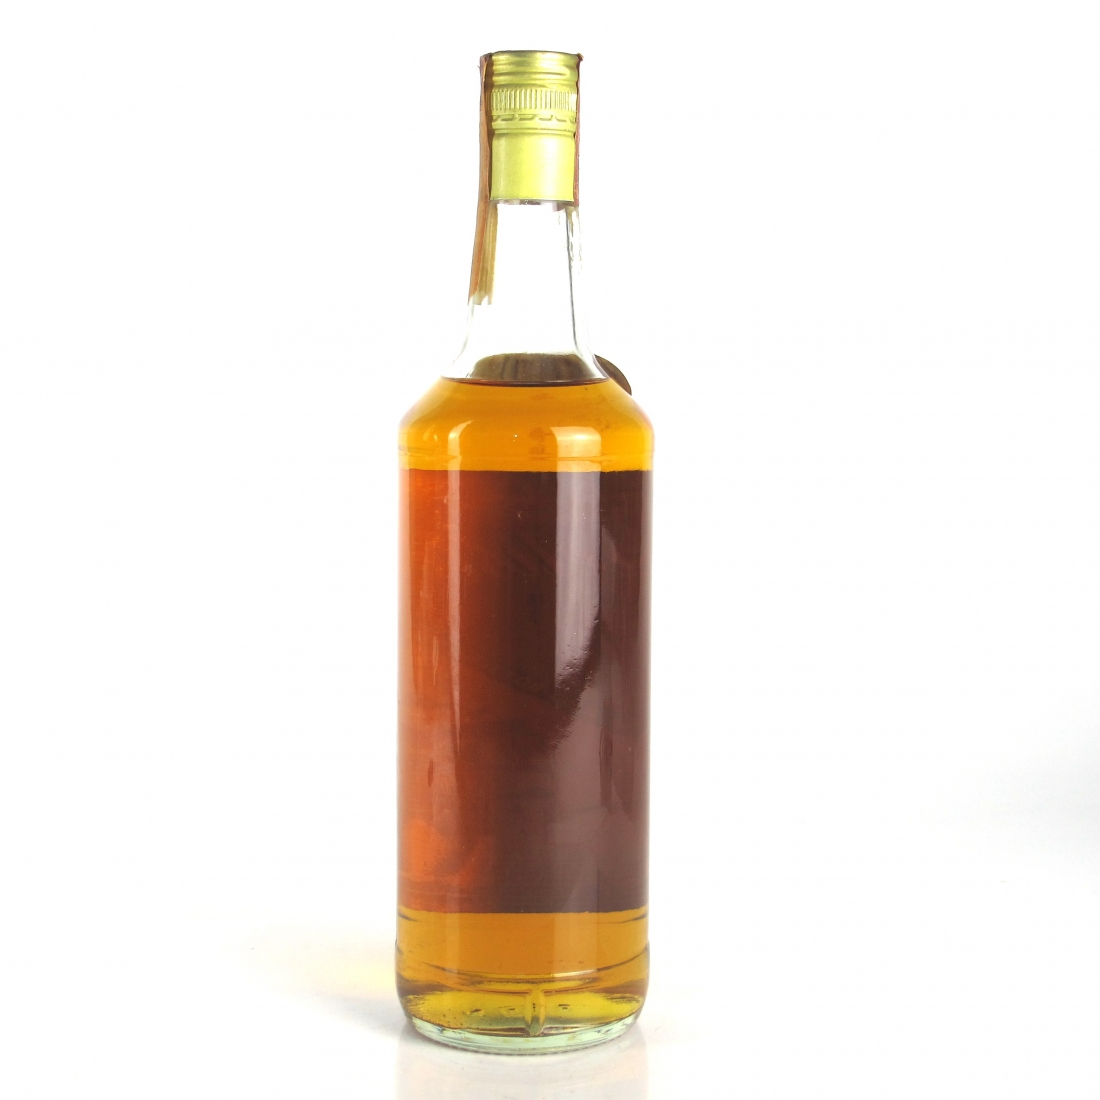 Clynelish 12 Year Old Ainslie and Heilbron 1970s / Di Chiano Import